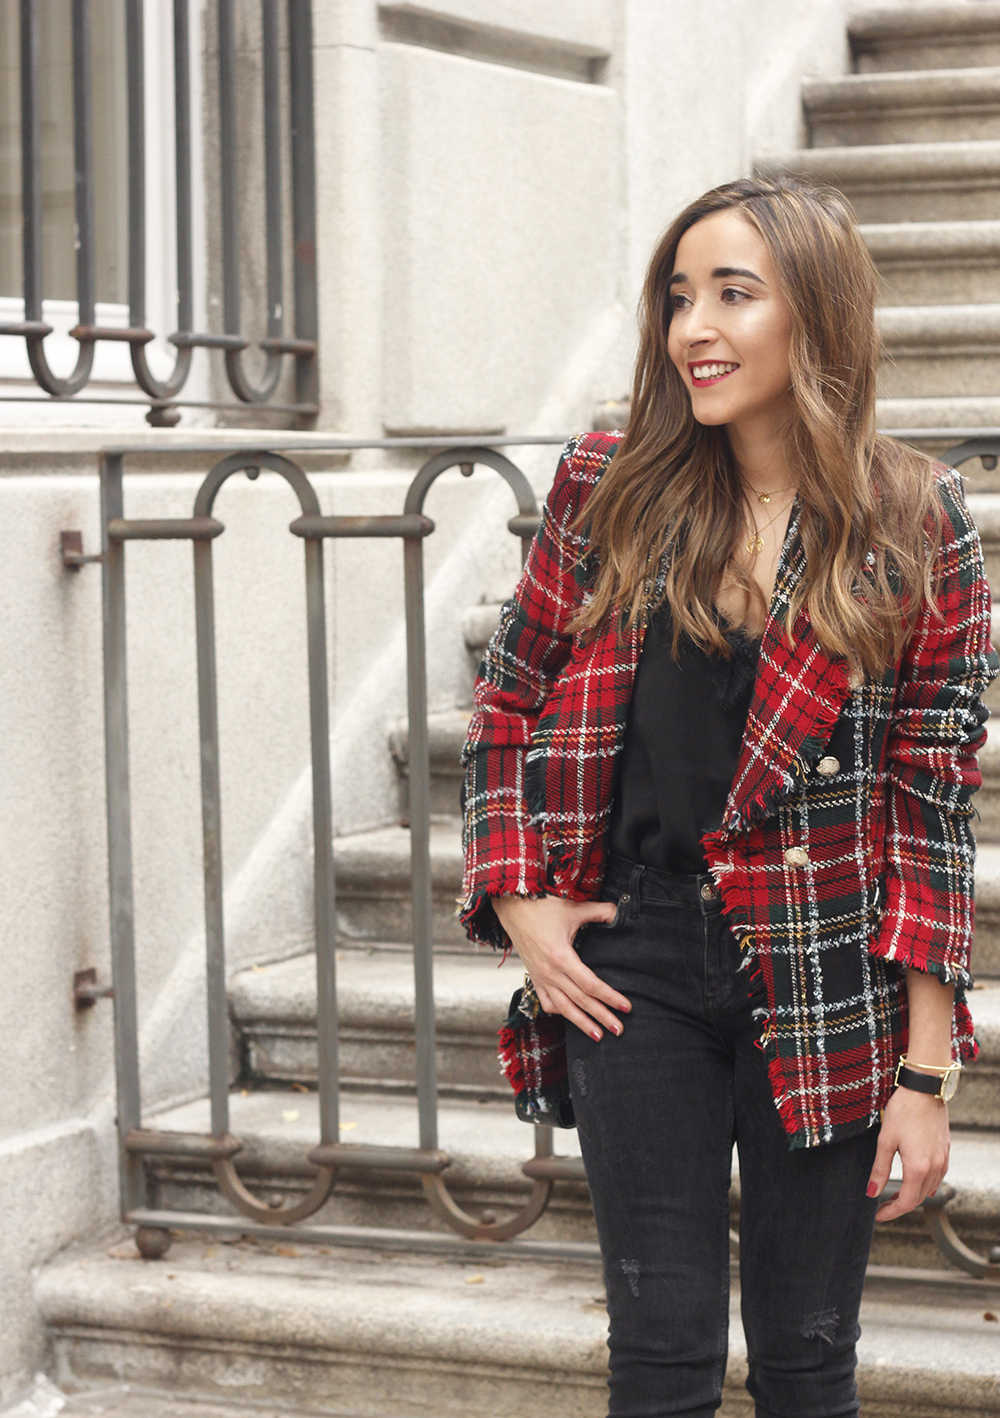 Tartan blazer black outfit heels givenchy bag street style fall outfit 20184168